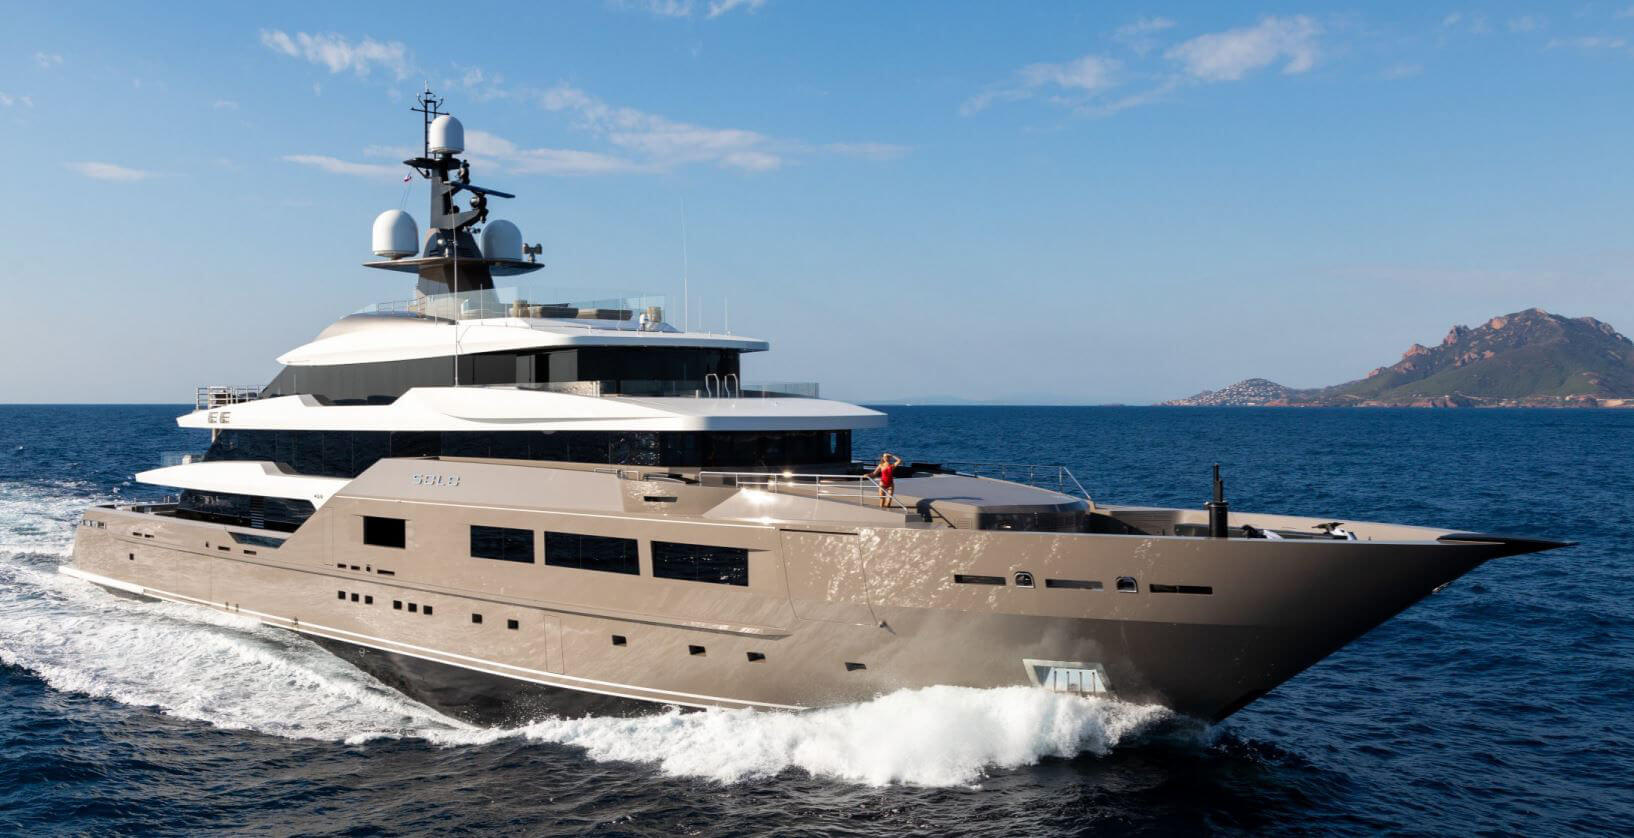 Sail in The Ultimate Luxury: TJB Yacht, French Riviera Experience